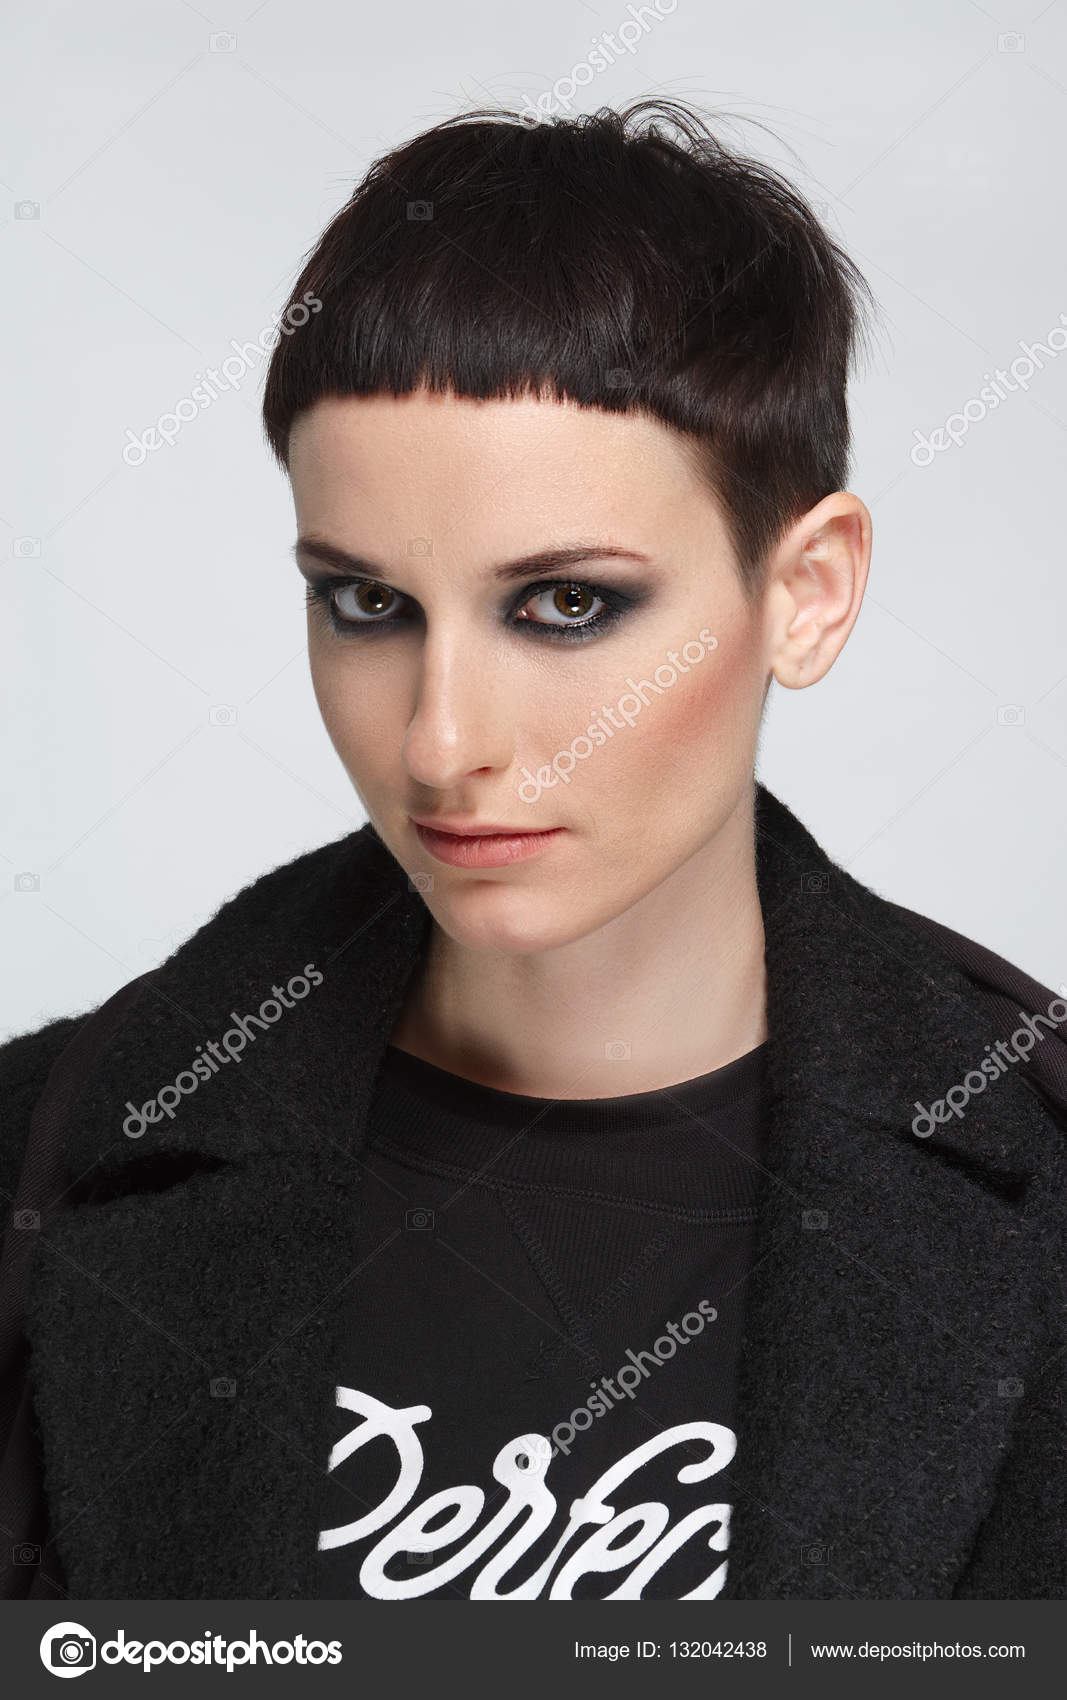 Hairstyles For Black Teenage Girl With Short Natural Hair Pretty Young Woman With Short Black Hair In Black Warm Coat Short Haircut And Style Natural Makeup Stock Photo C Boomeart 132042438